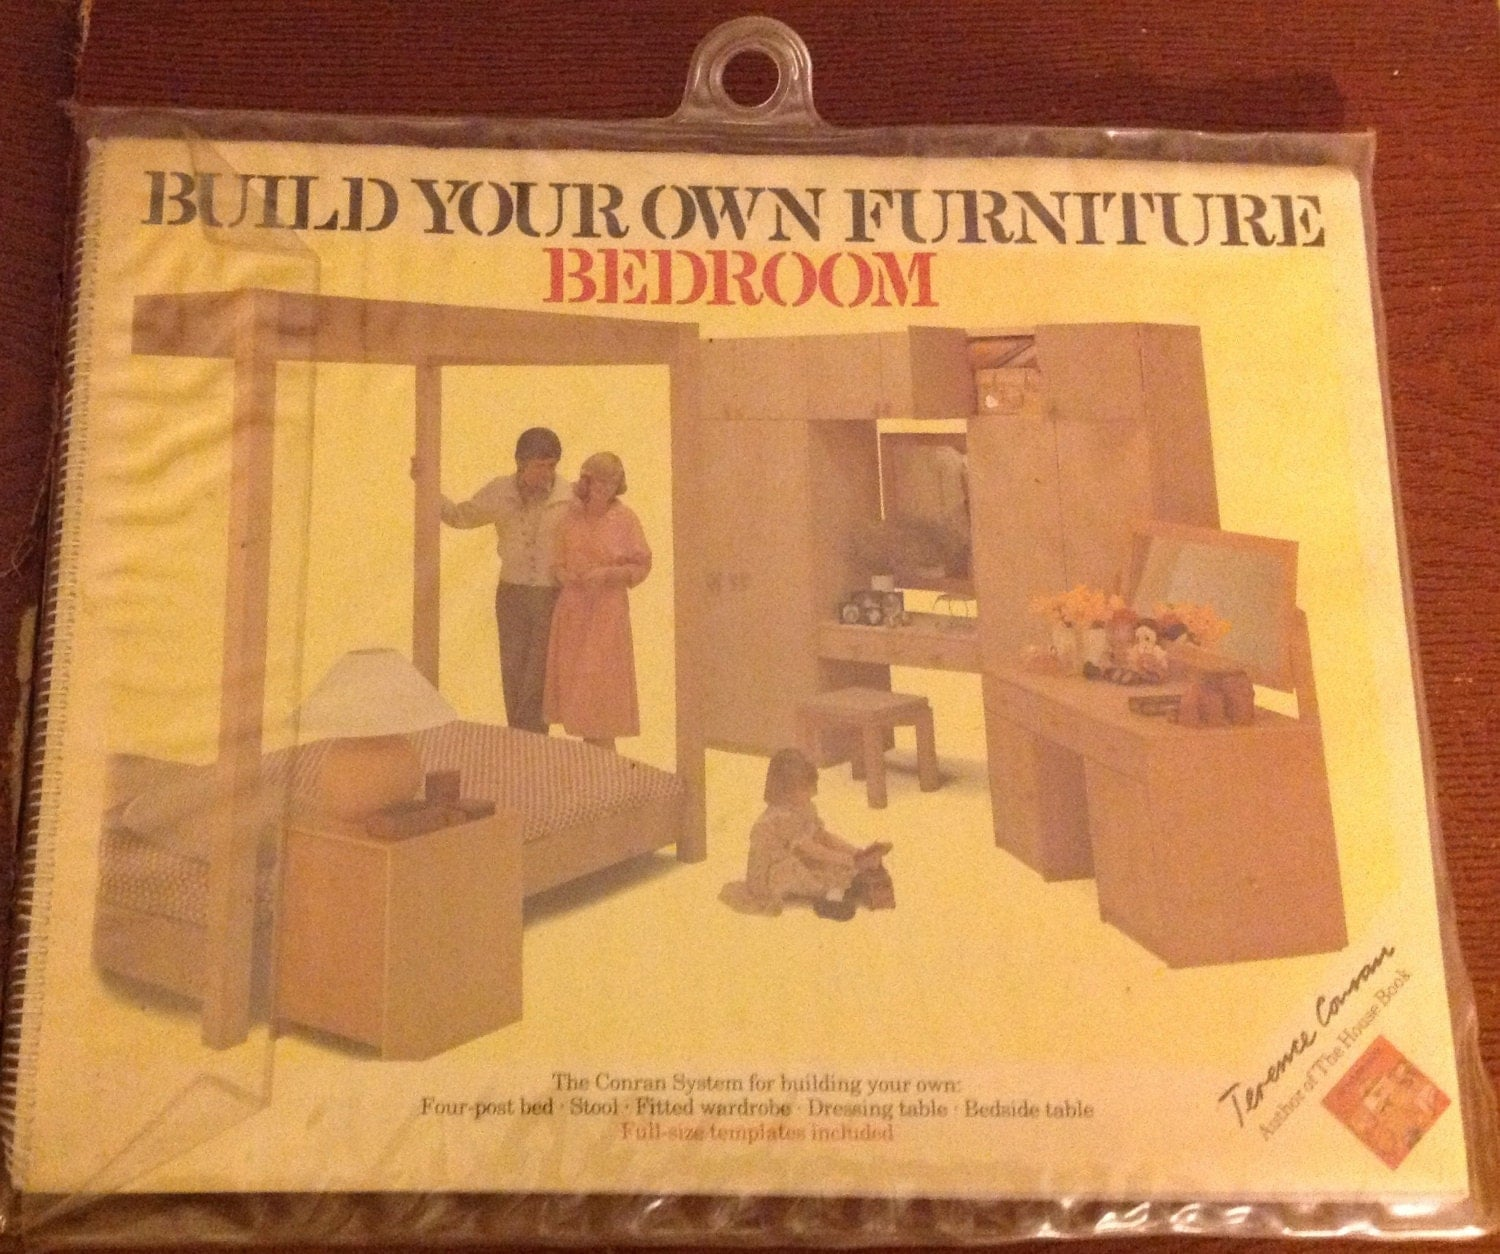 Build Your Own Bedroom Furniture Four Post Bed Stool